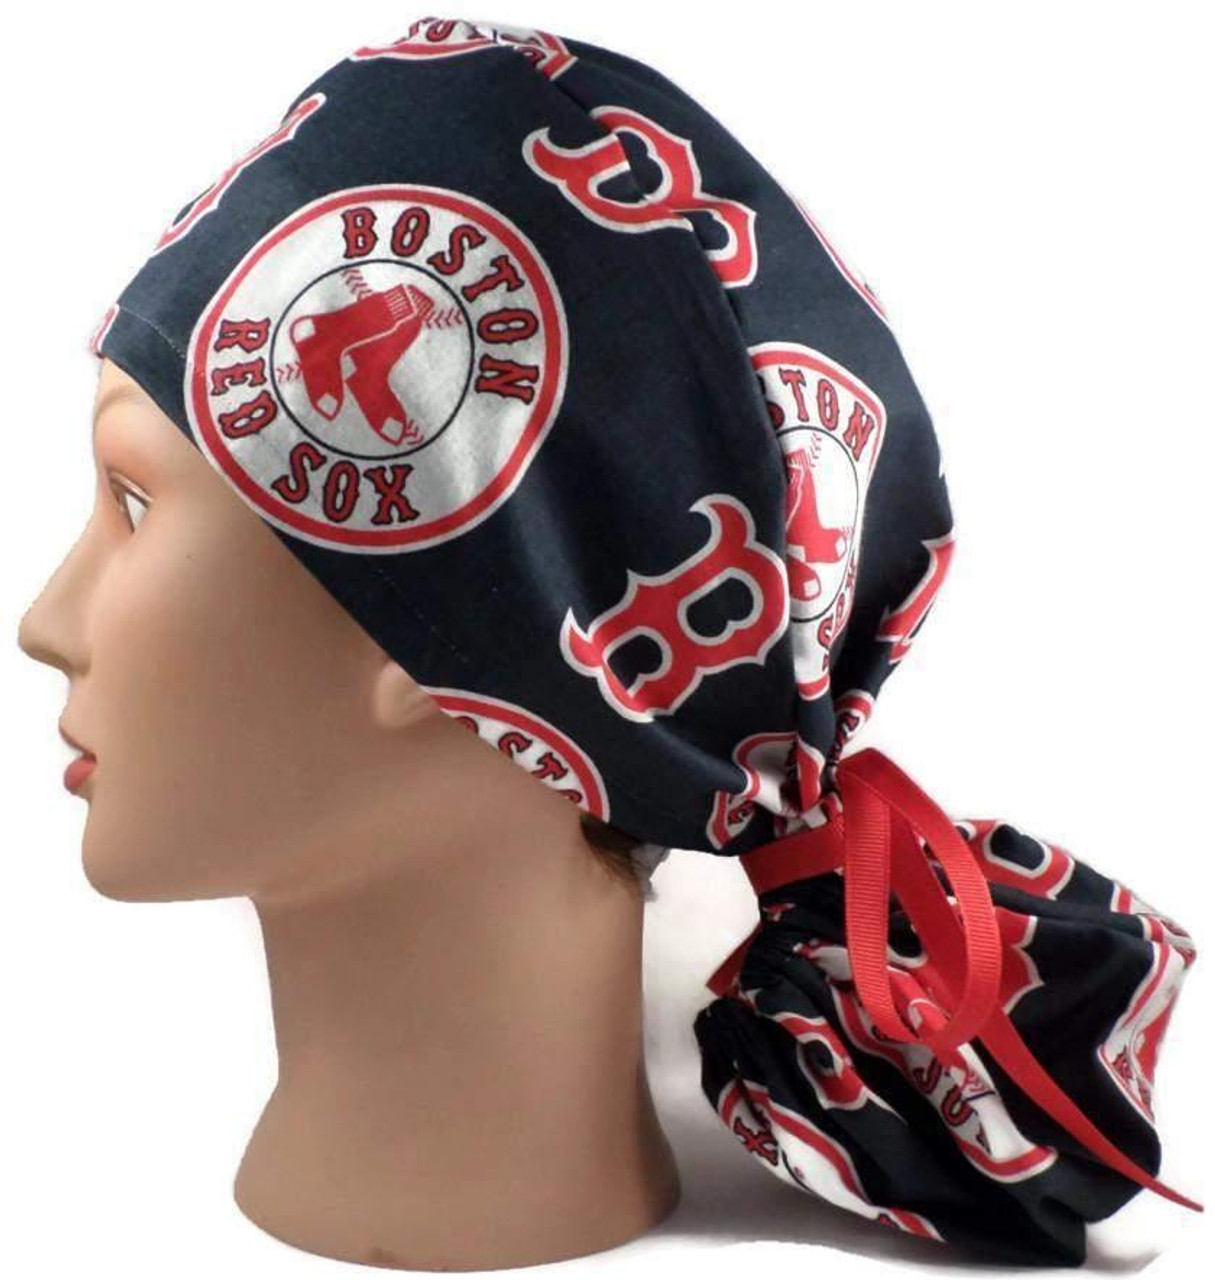 315d227bdef new arrivals womens adjustable ponytail surgical scrub hat cap handmade  with officially licensed boston red sox